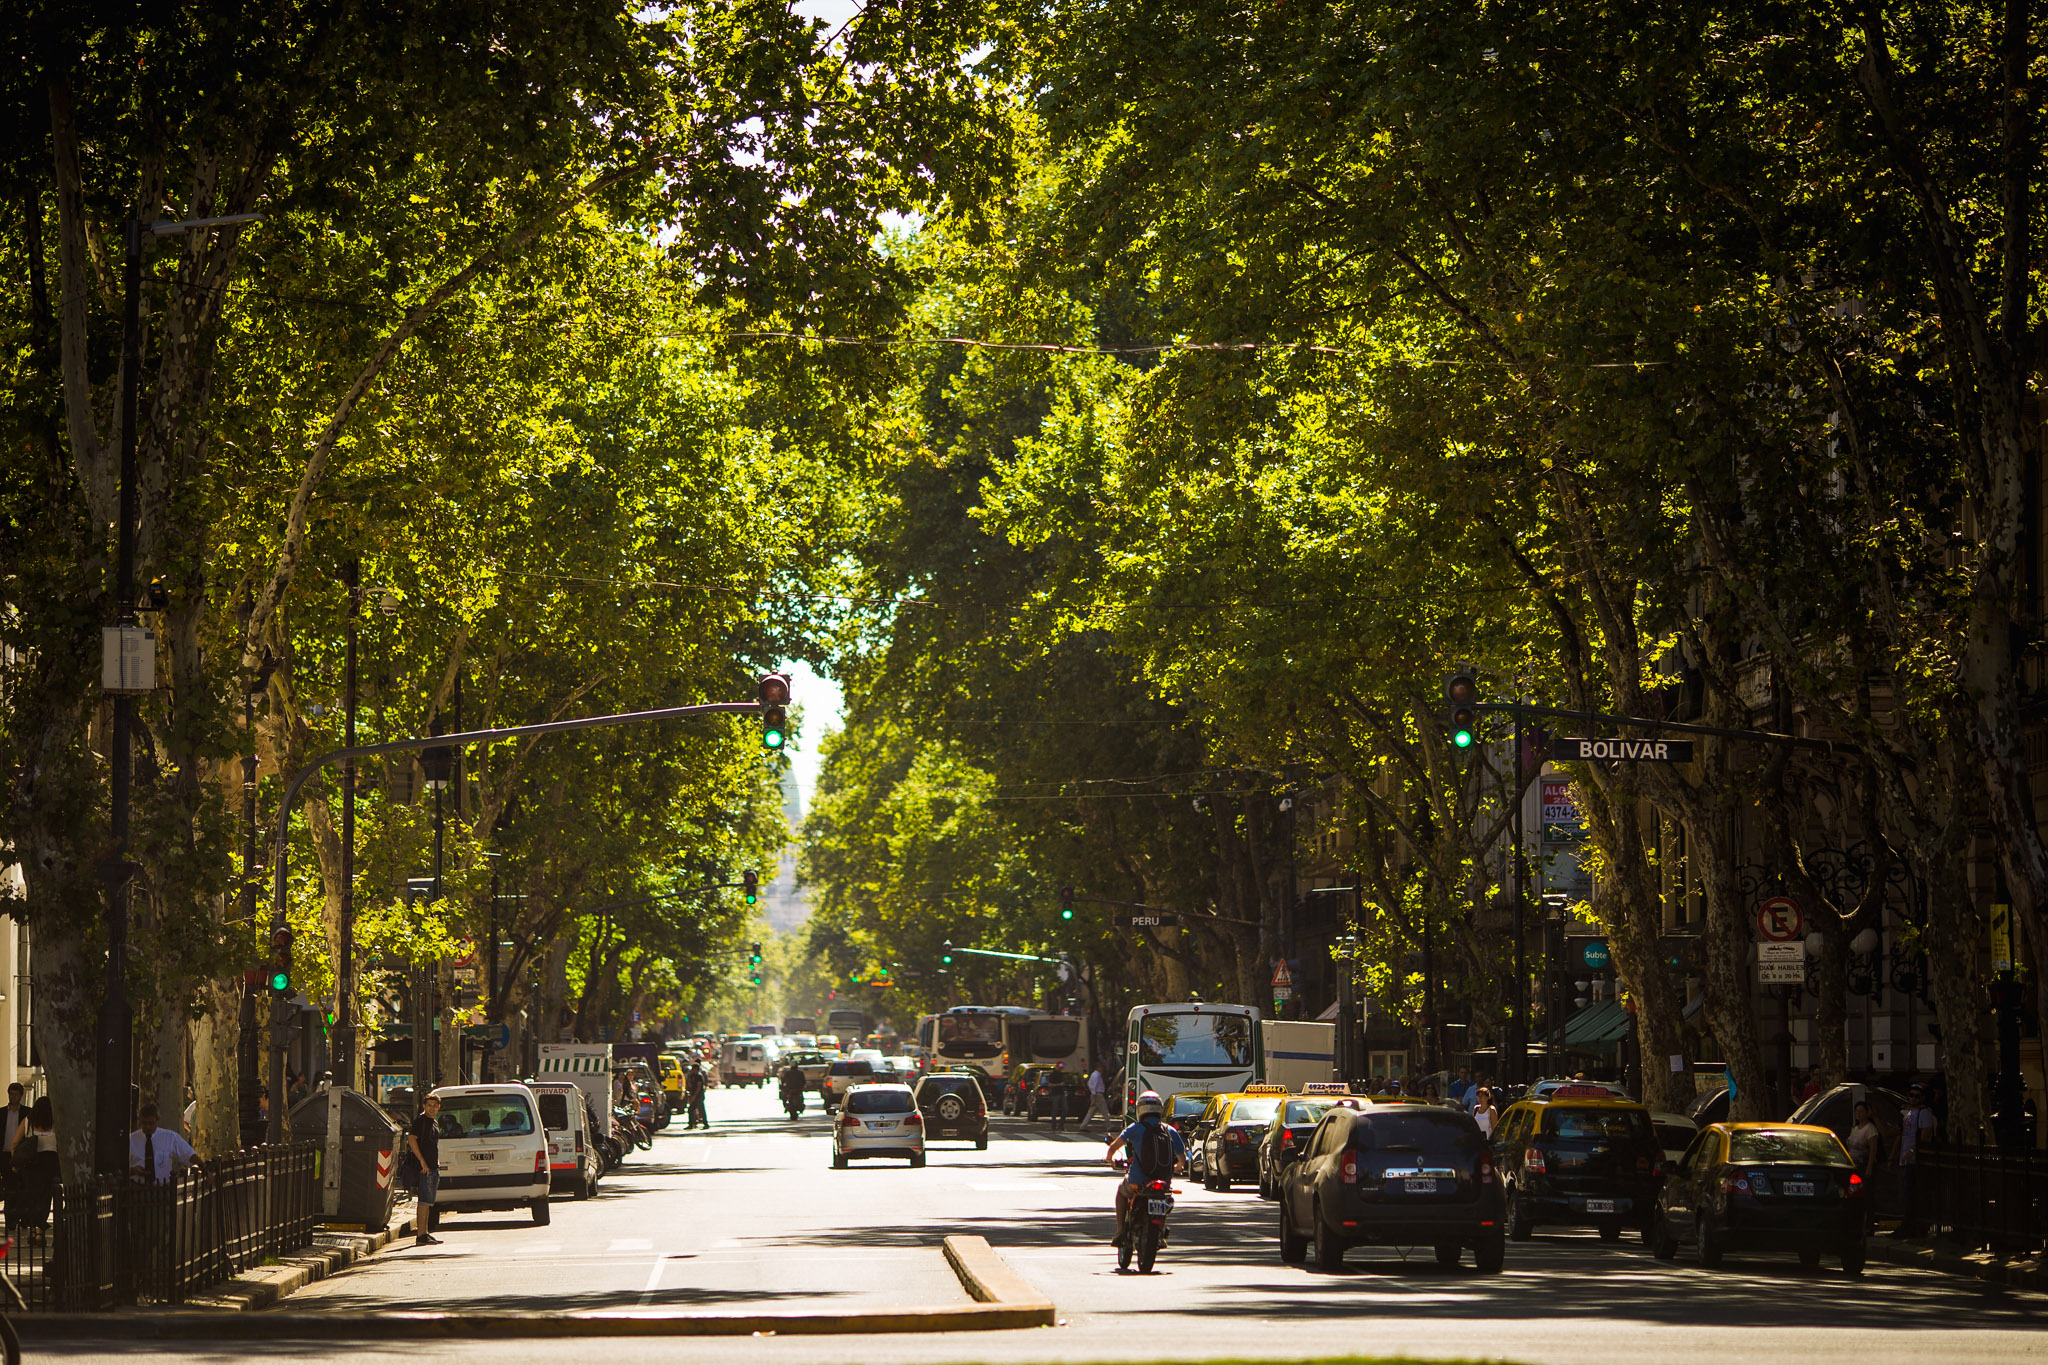 wedding-travellers-argentina-buenos-aires-trees-street